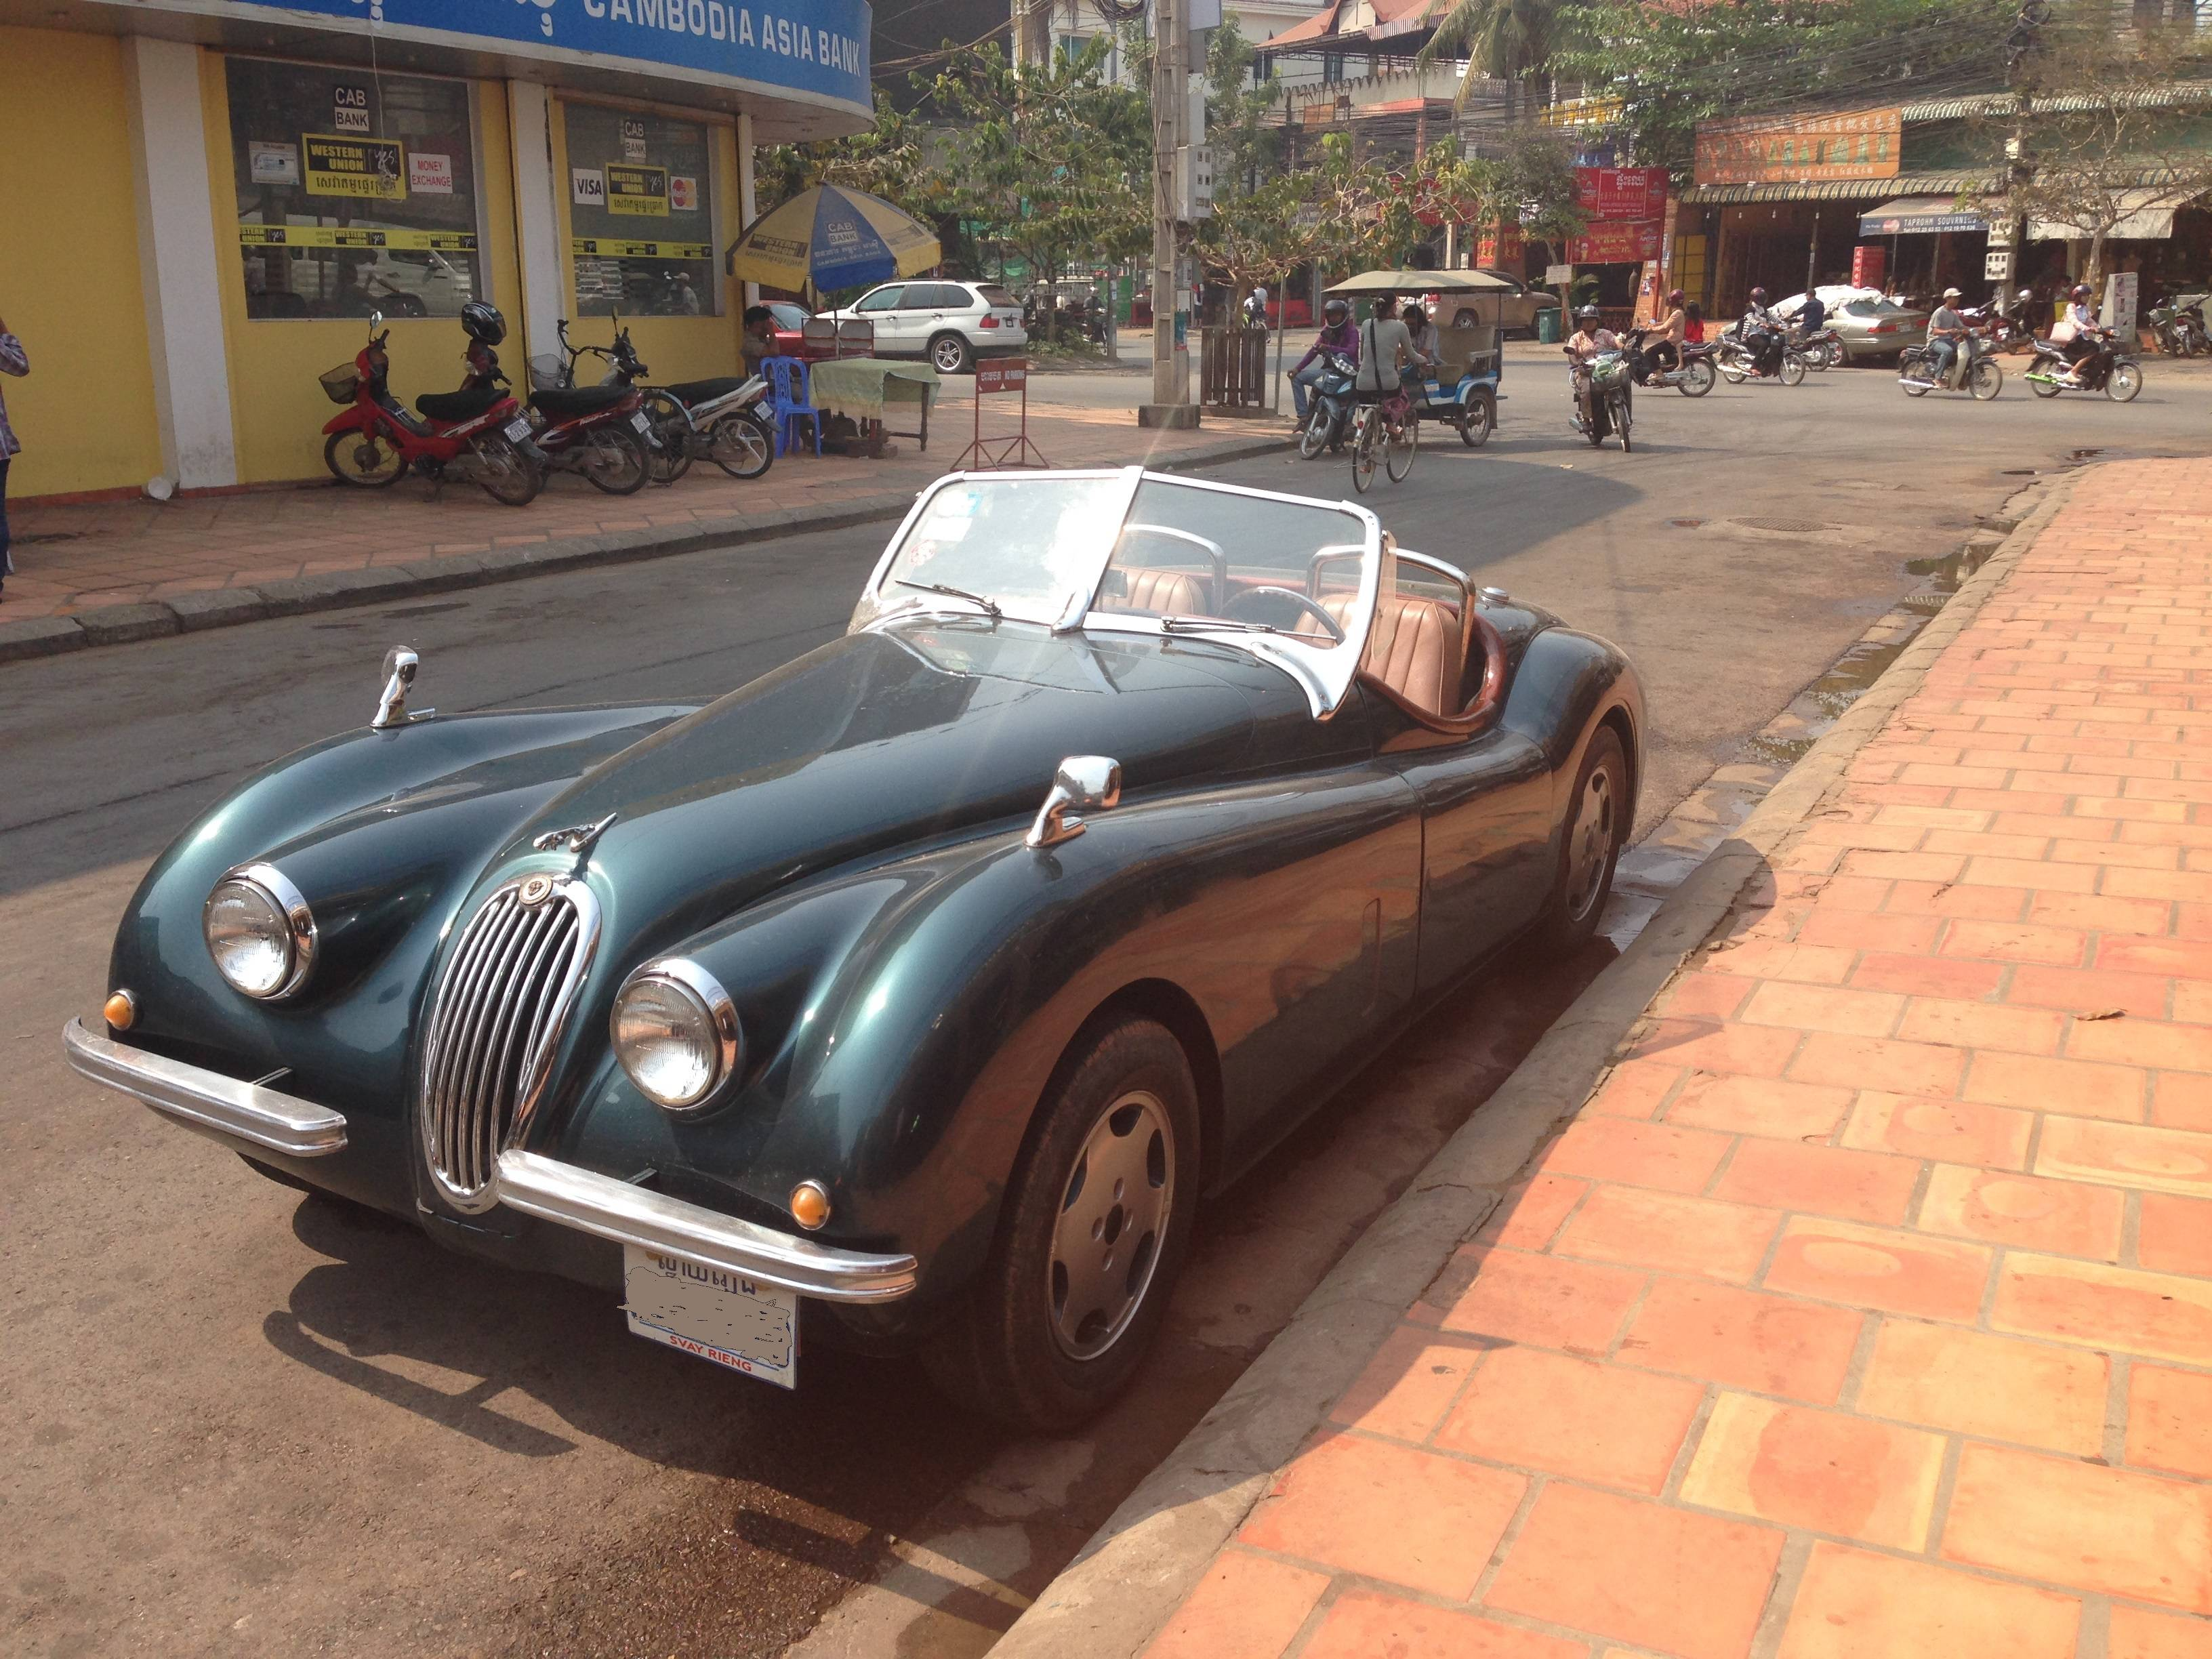 Didn't expect to see a car like this in Cambodia